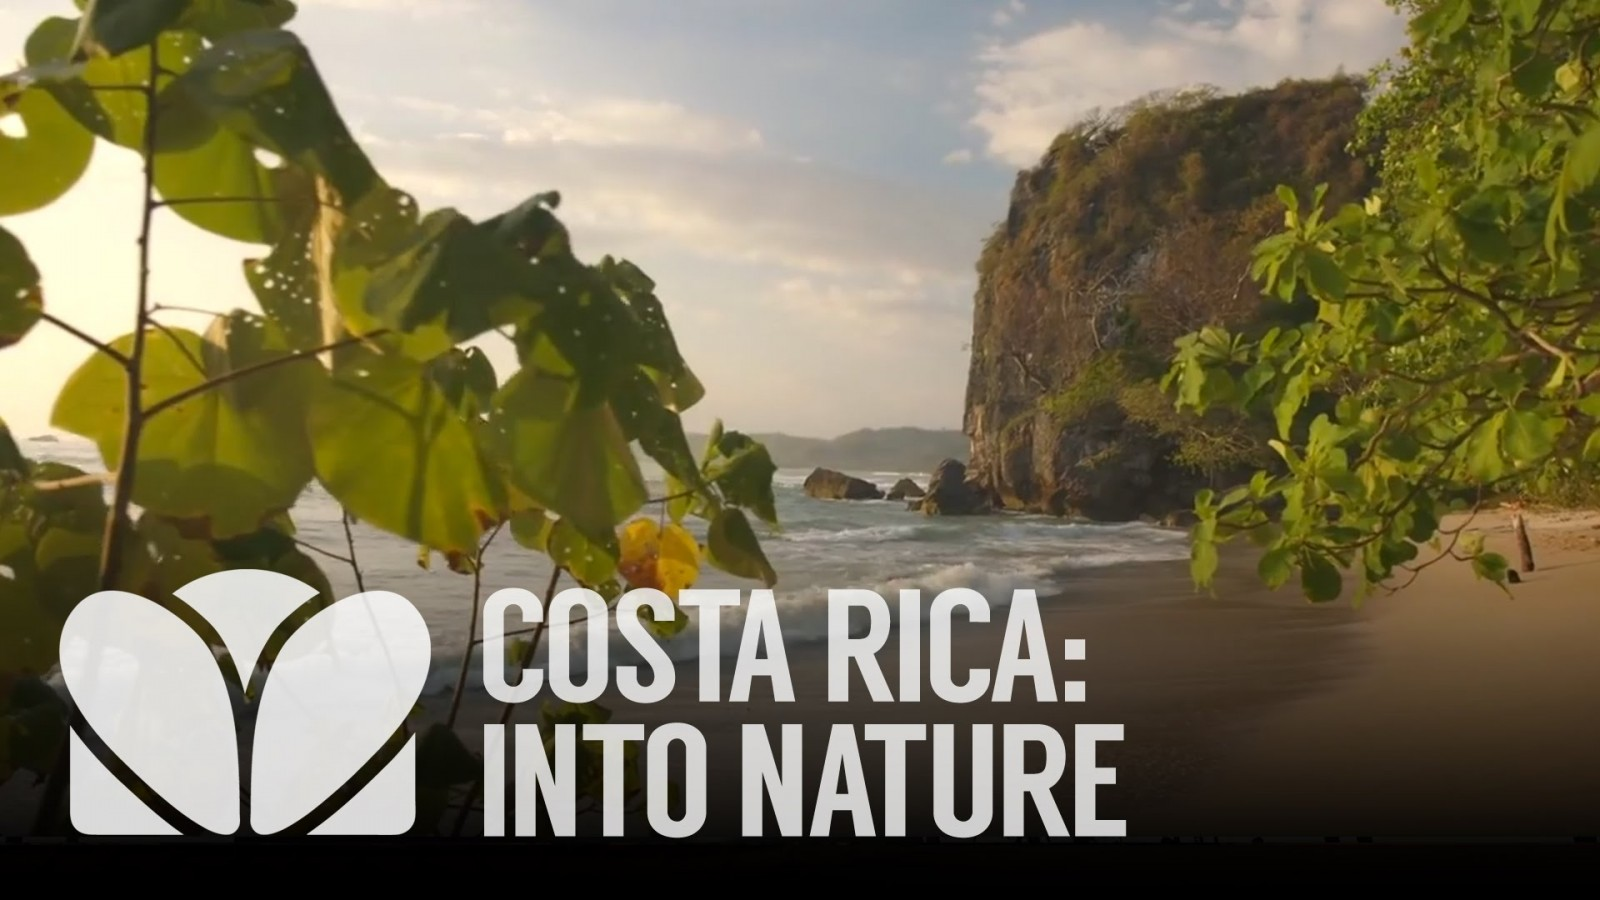 A dose of Costa Rican nature